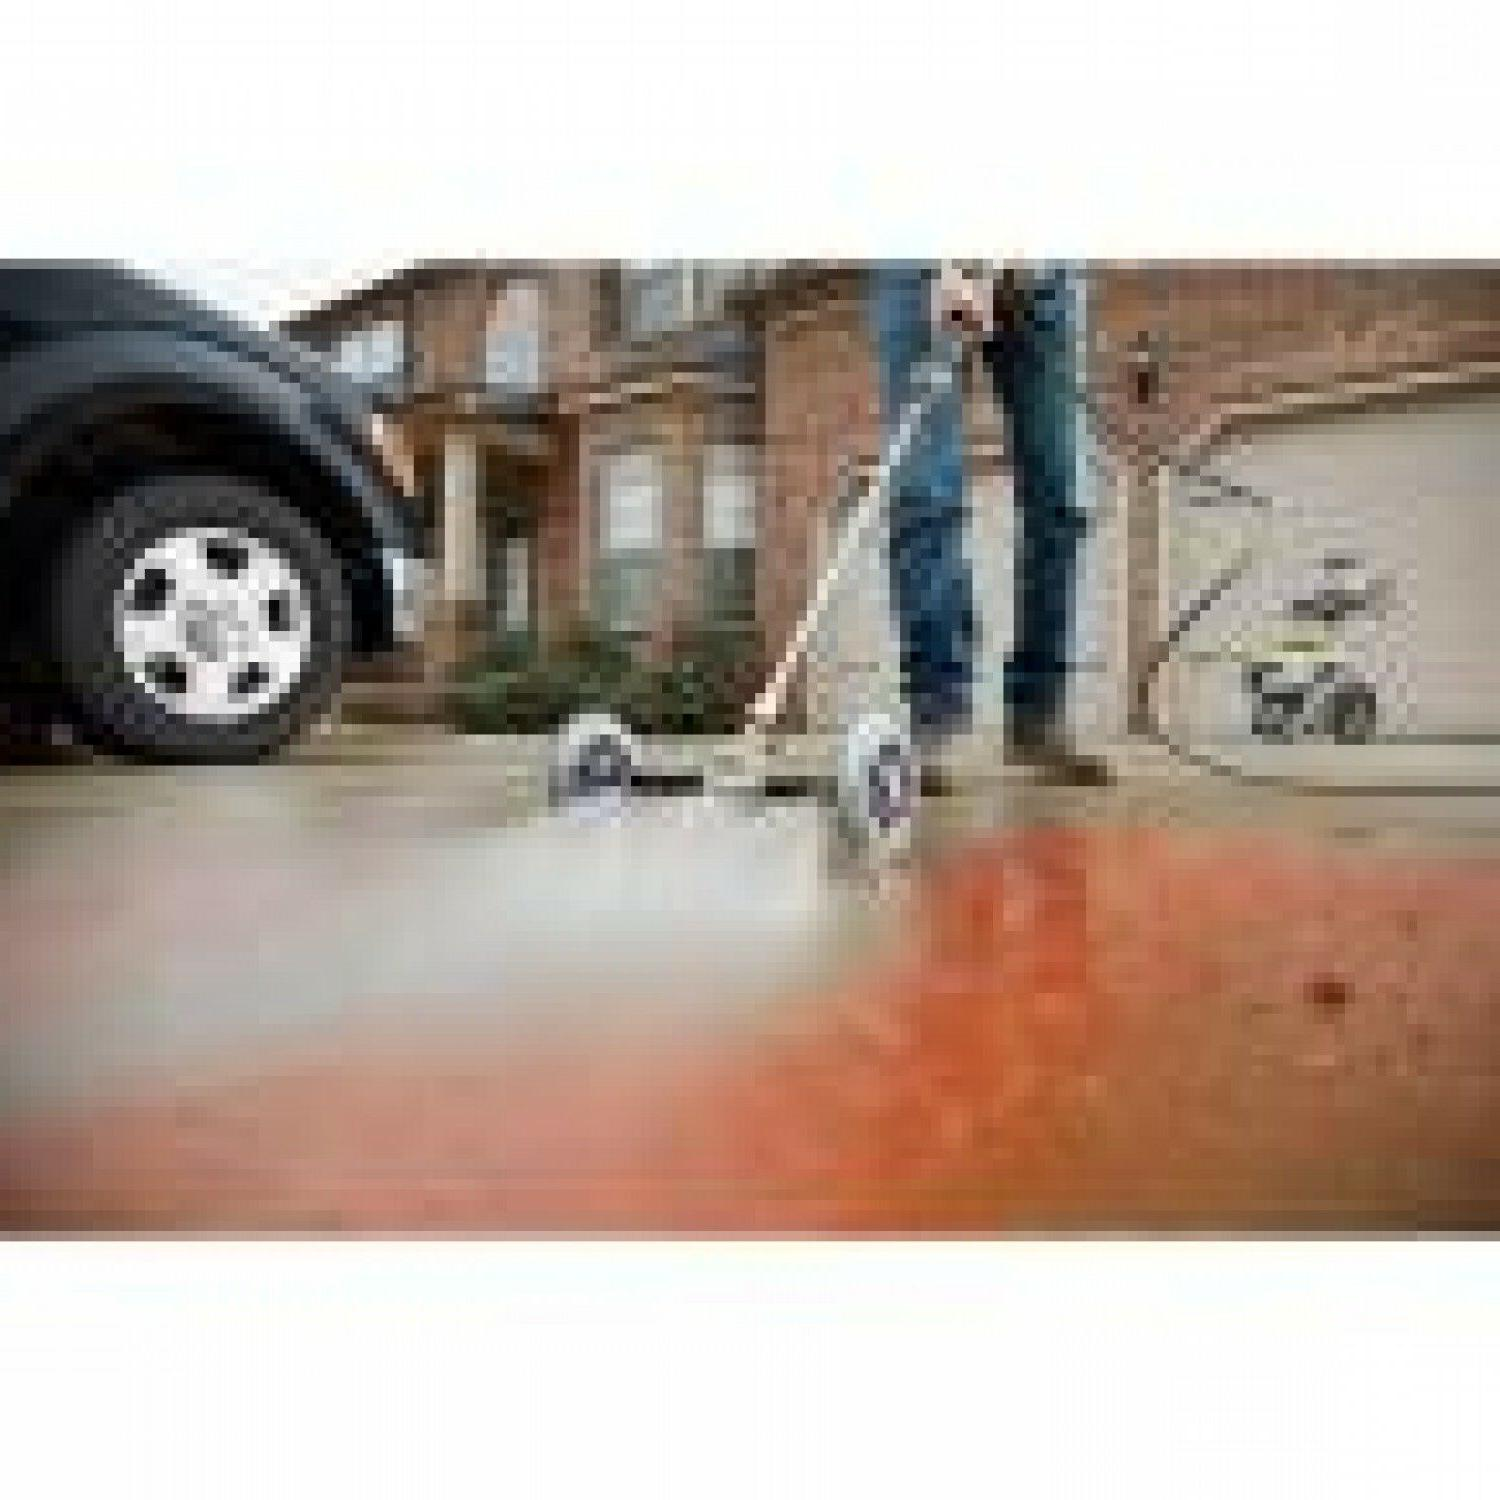 11 in. Pressure Washer Water Broom Cleaning Undercarriage Deck Sprayer